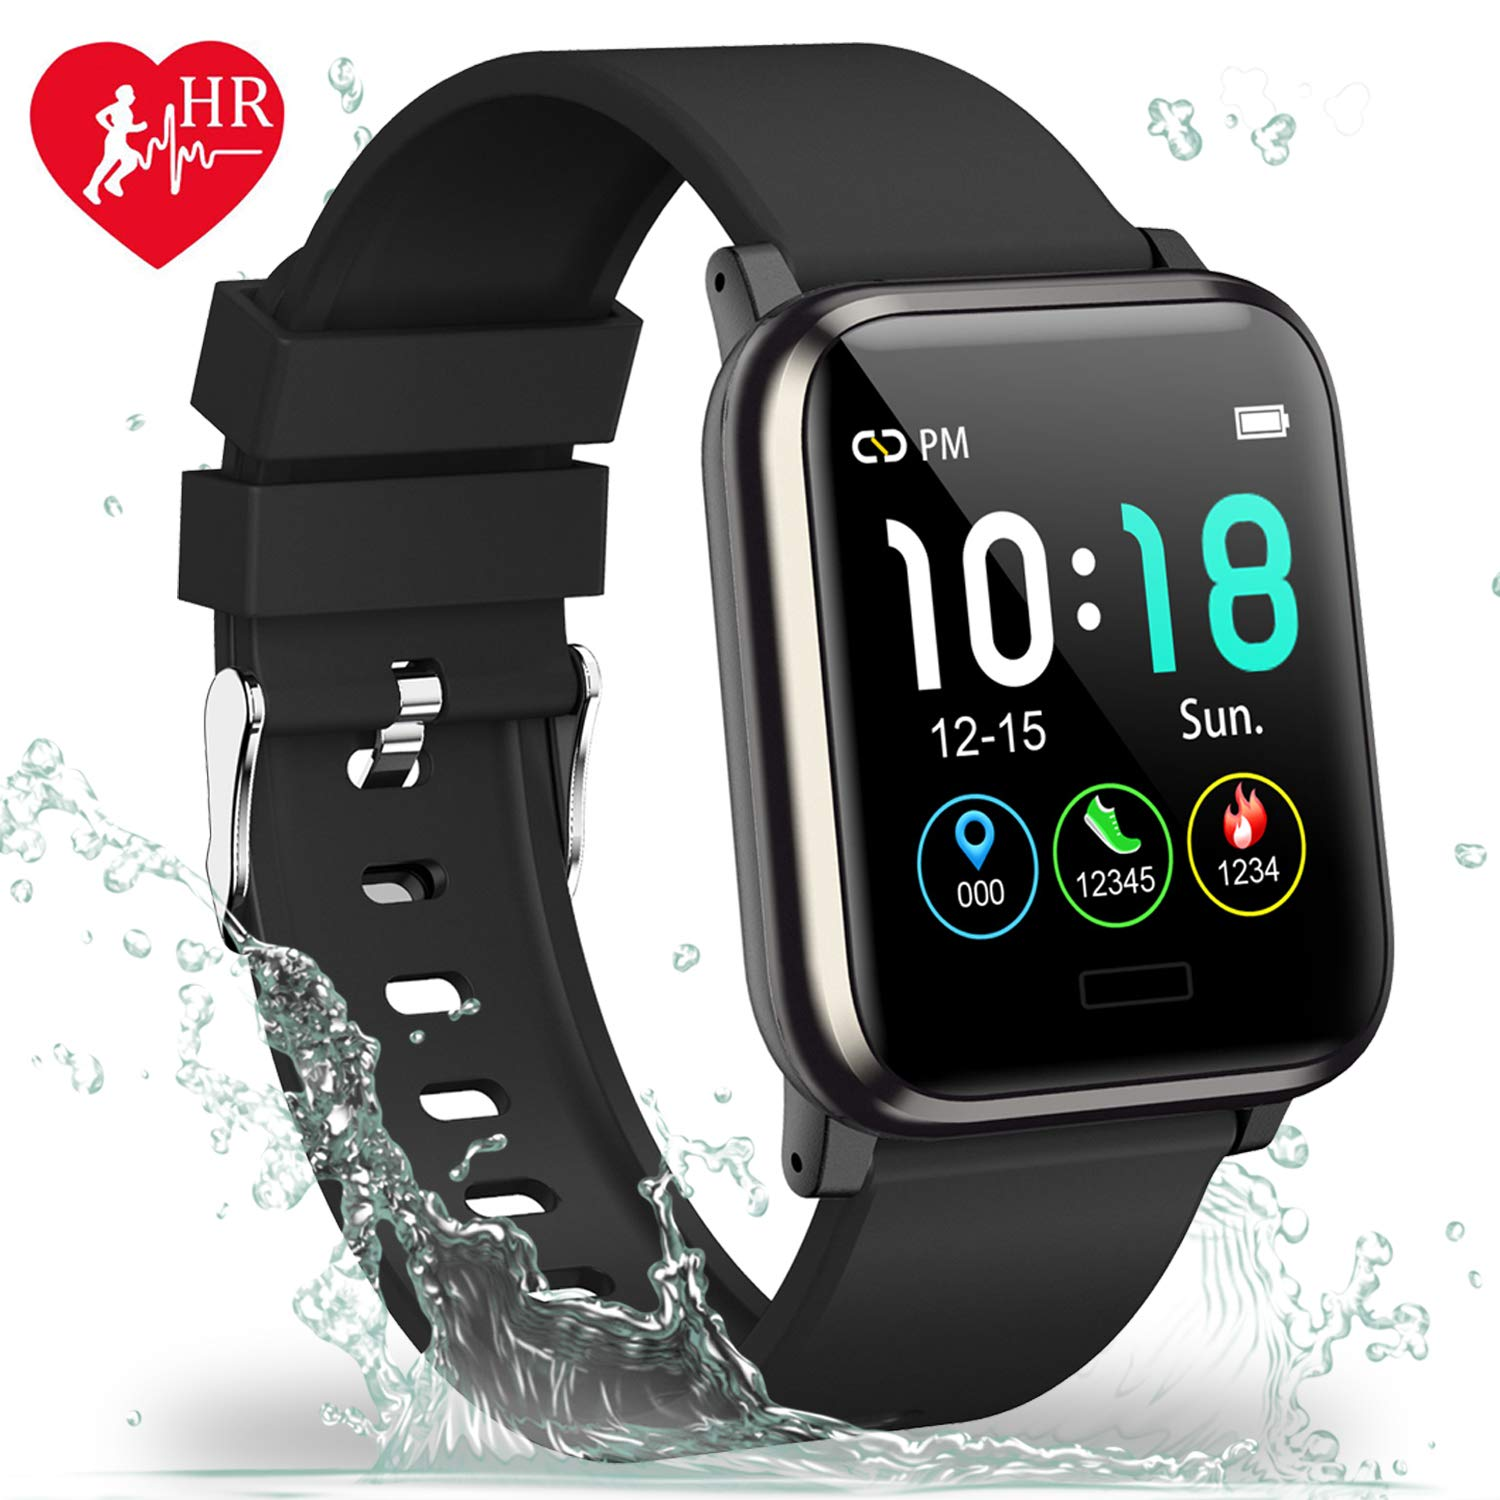 L8star Fitness Tracker HR, Activity Tracker with 1.3inch IPS Color Screen Long Battery Life Smart Watch with Sleep Monitor Step Counter Calorie Counter Smart Bracelet for Women Men